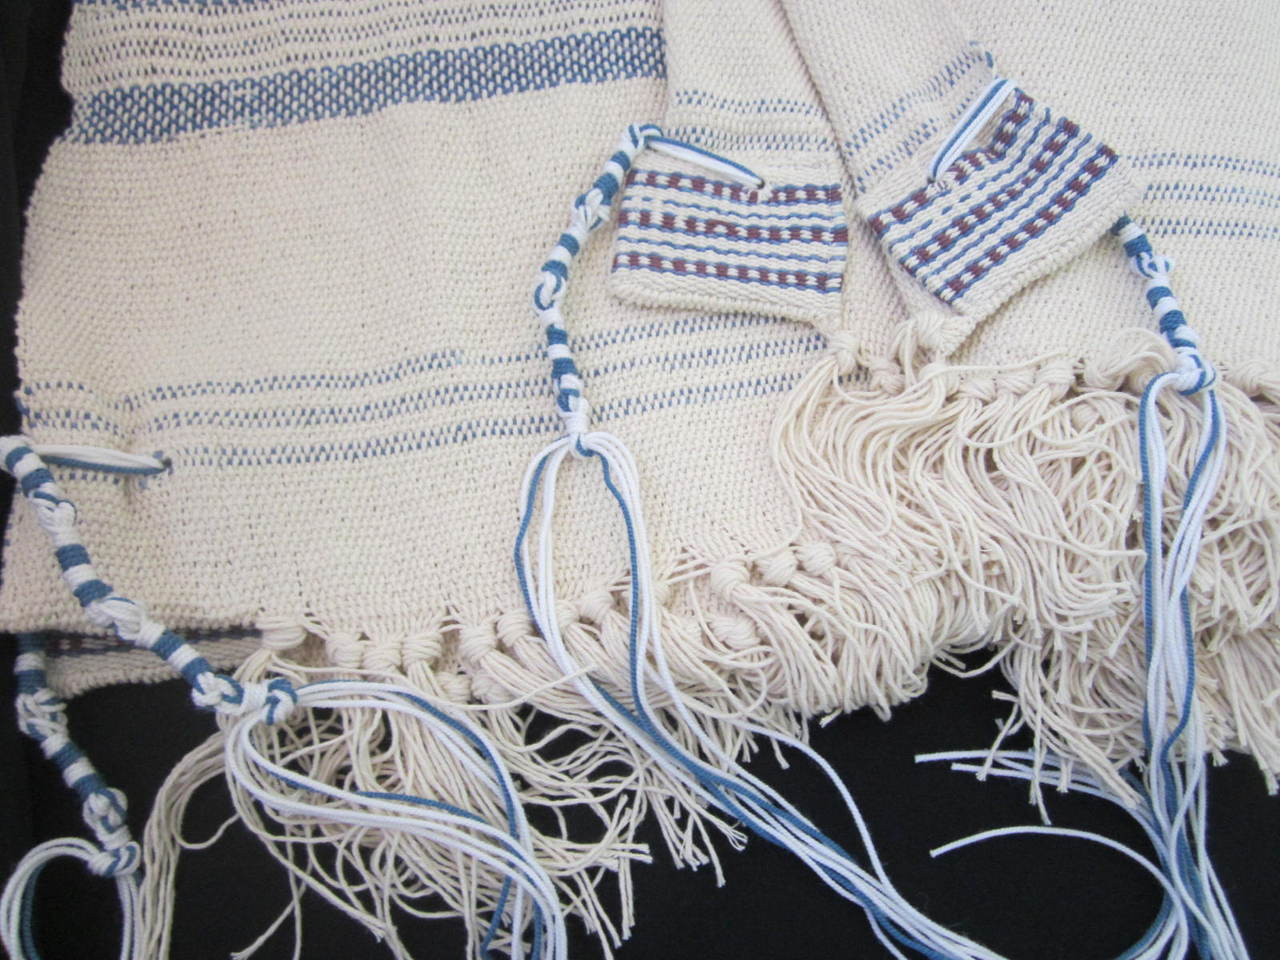 Kedma Classic shown with thick Ptil Tekhelet tzitzit tied according to the Vilna Gaon